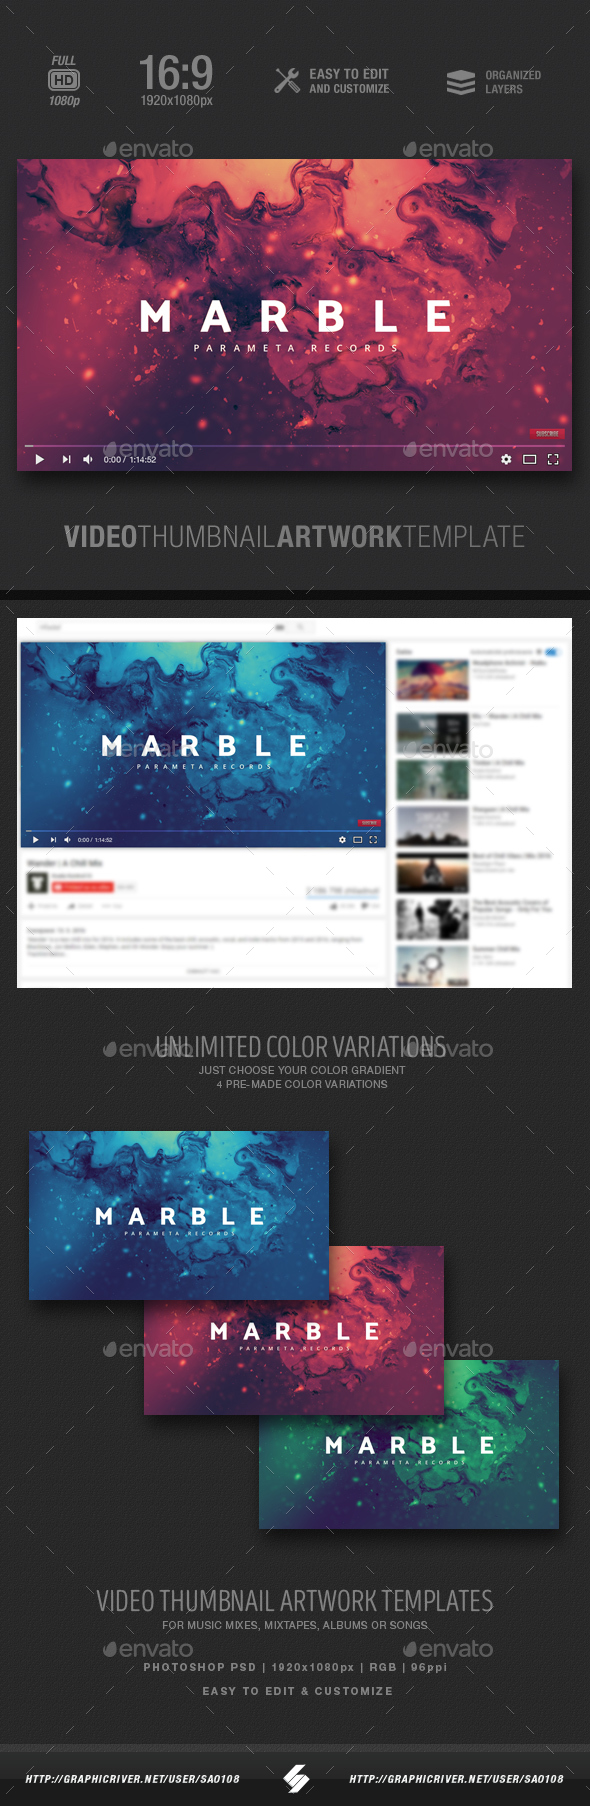 GraphicRiver Marble Music Video Thumbnail Artwork 20823019